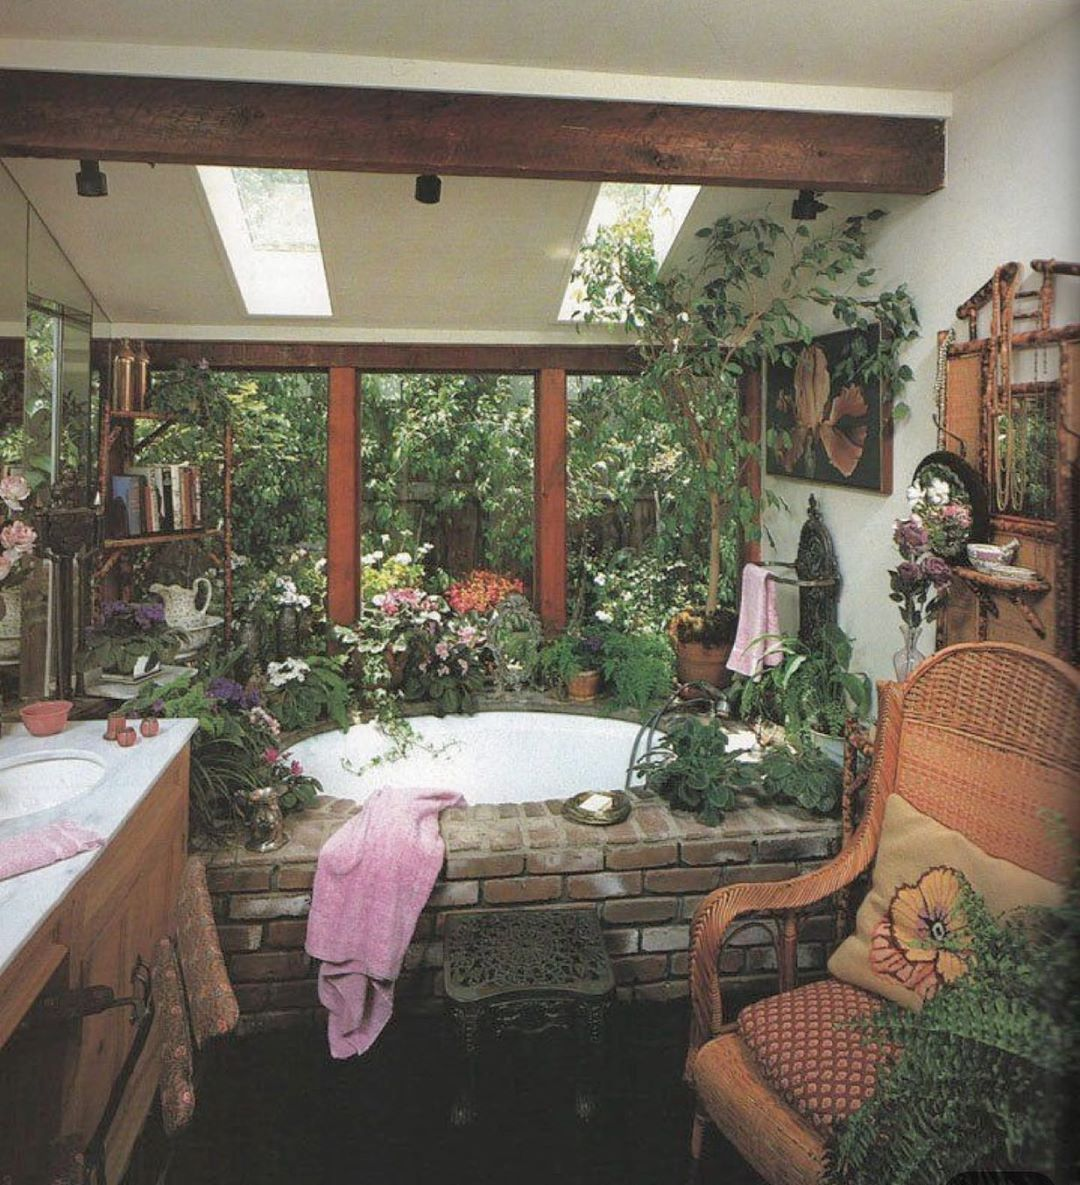 Brick Wicker And Ferns Oh My This Bathroom From 1982 Is